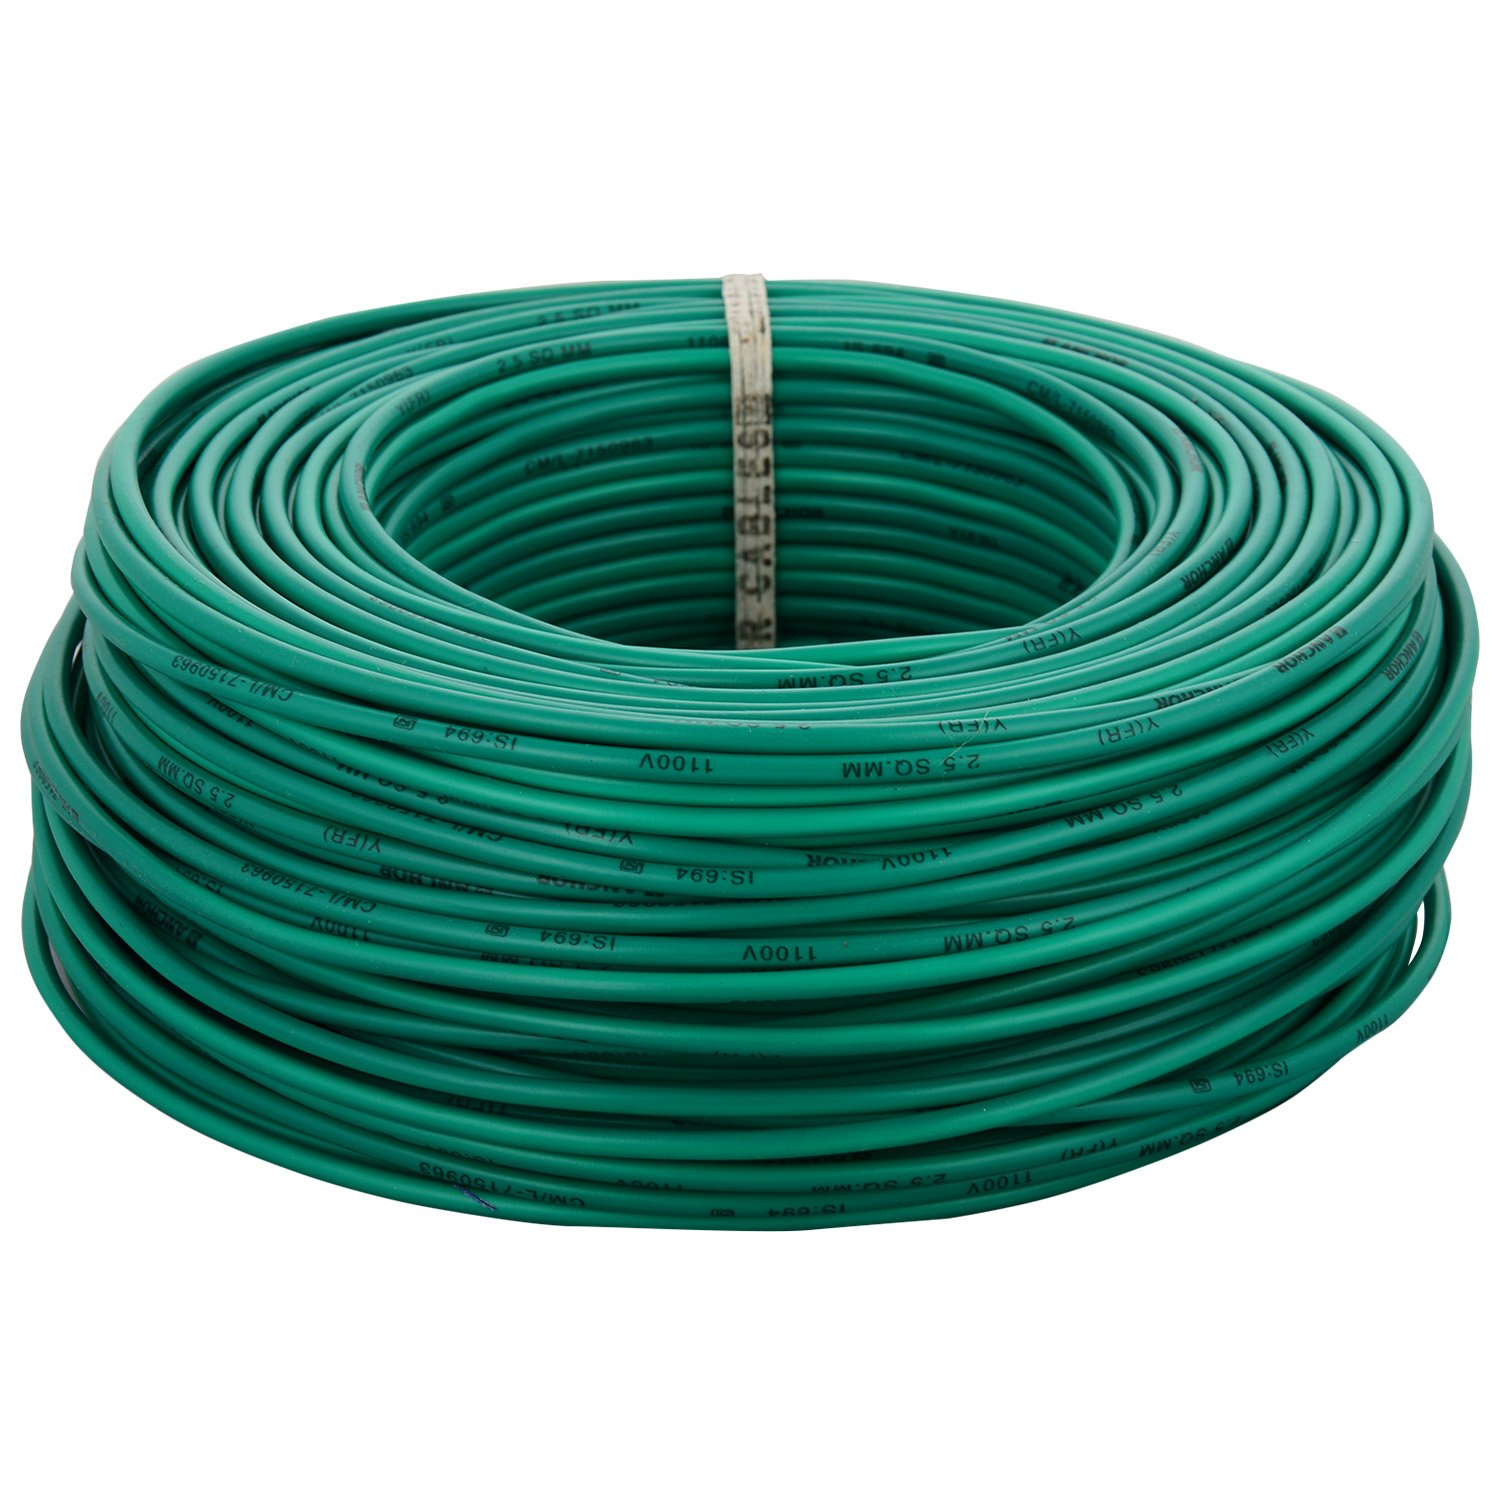 Anchor Insulated Copper PVC Cable 2.5 Sq mm Wire (Green): Amazon.in ...